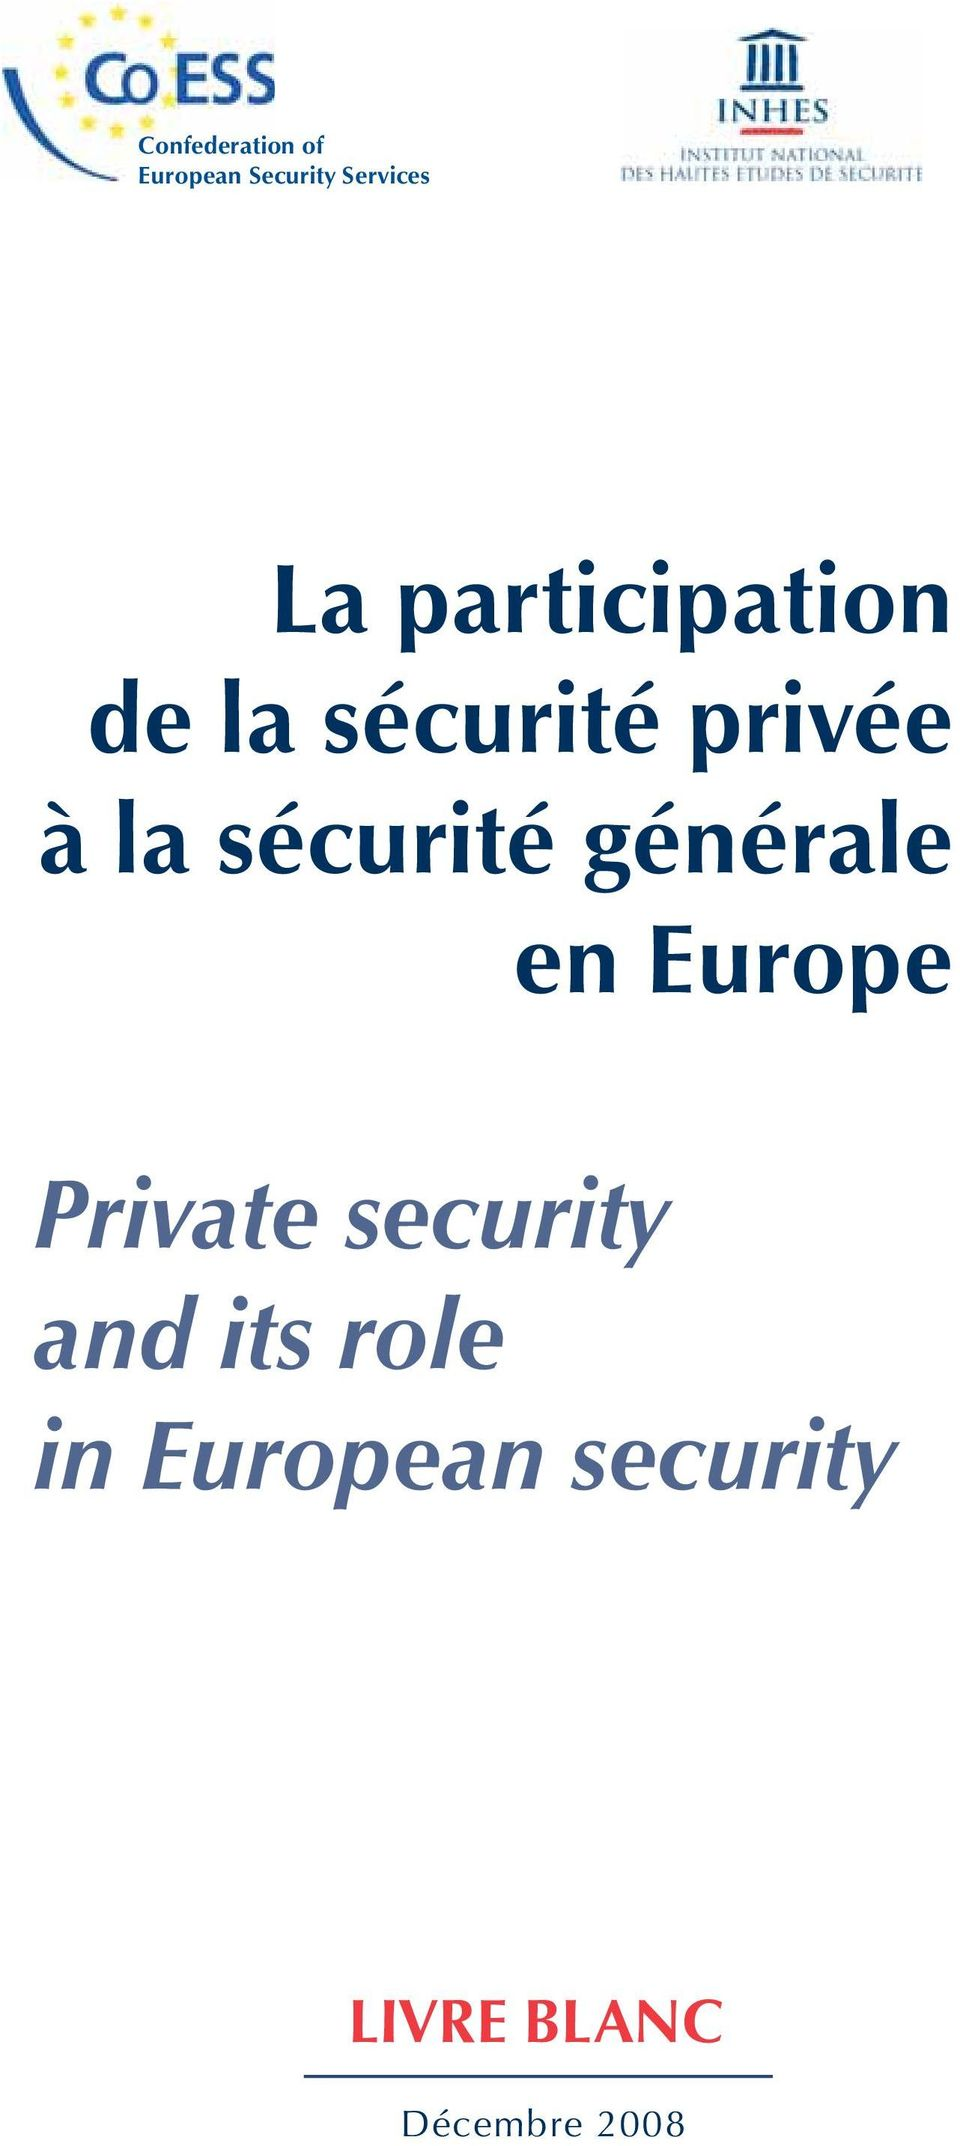 sécurité générale en Europe Private security